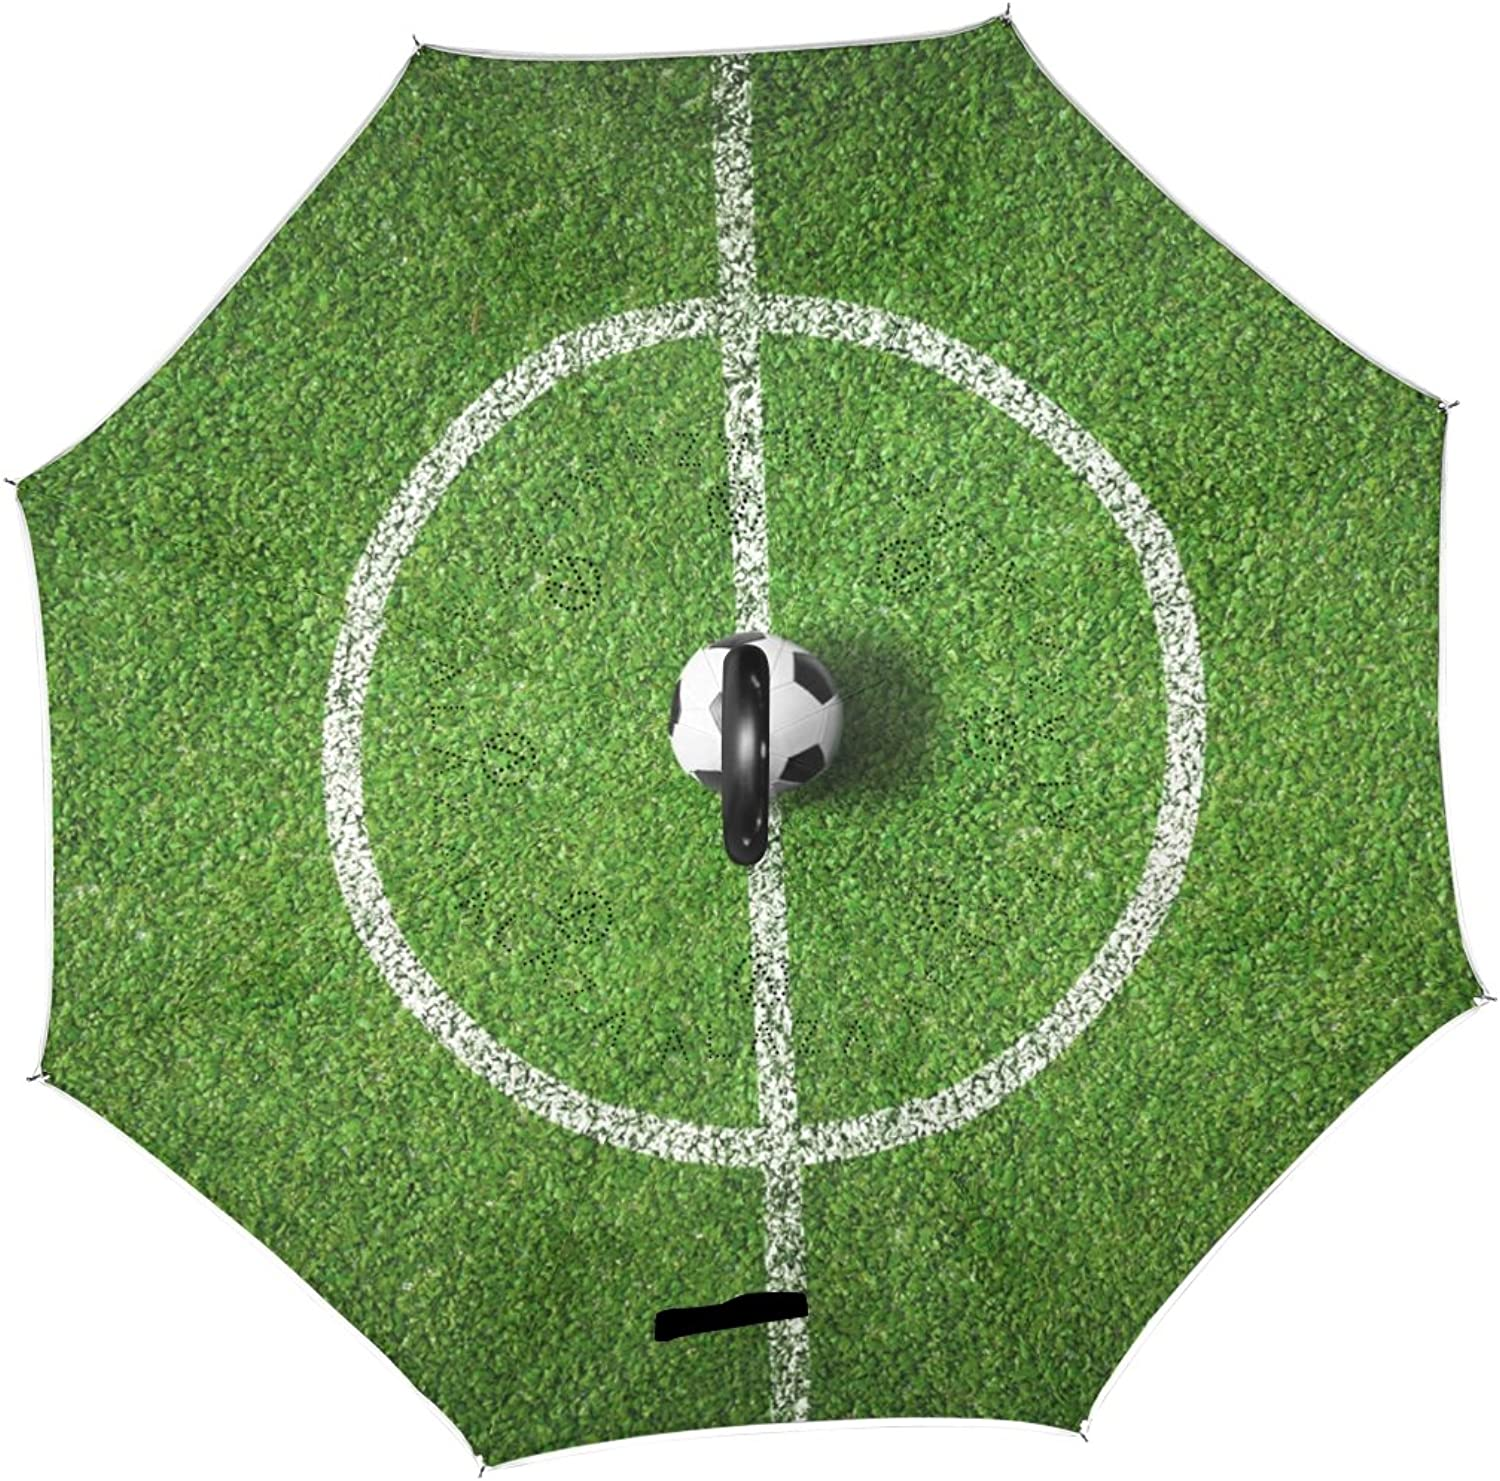 ALAZA Soccer Field Center American Football Ingreened Umbrella Double Layer Windproof Reverse Folding Umbrella for Car With C-Shape Handle